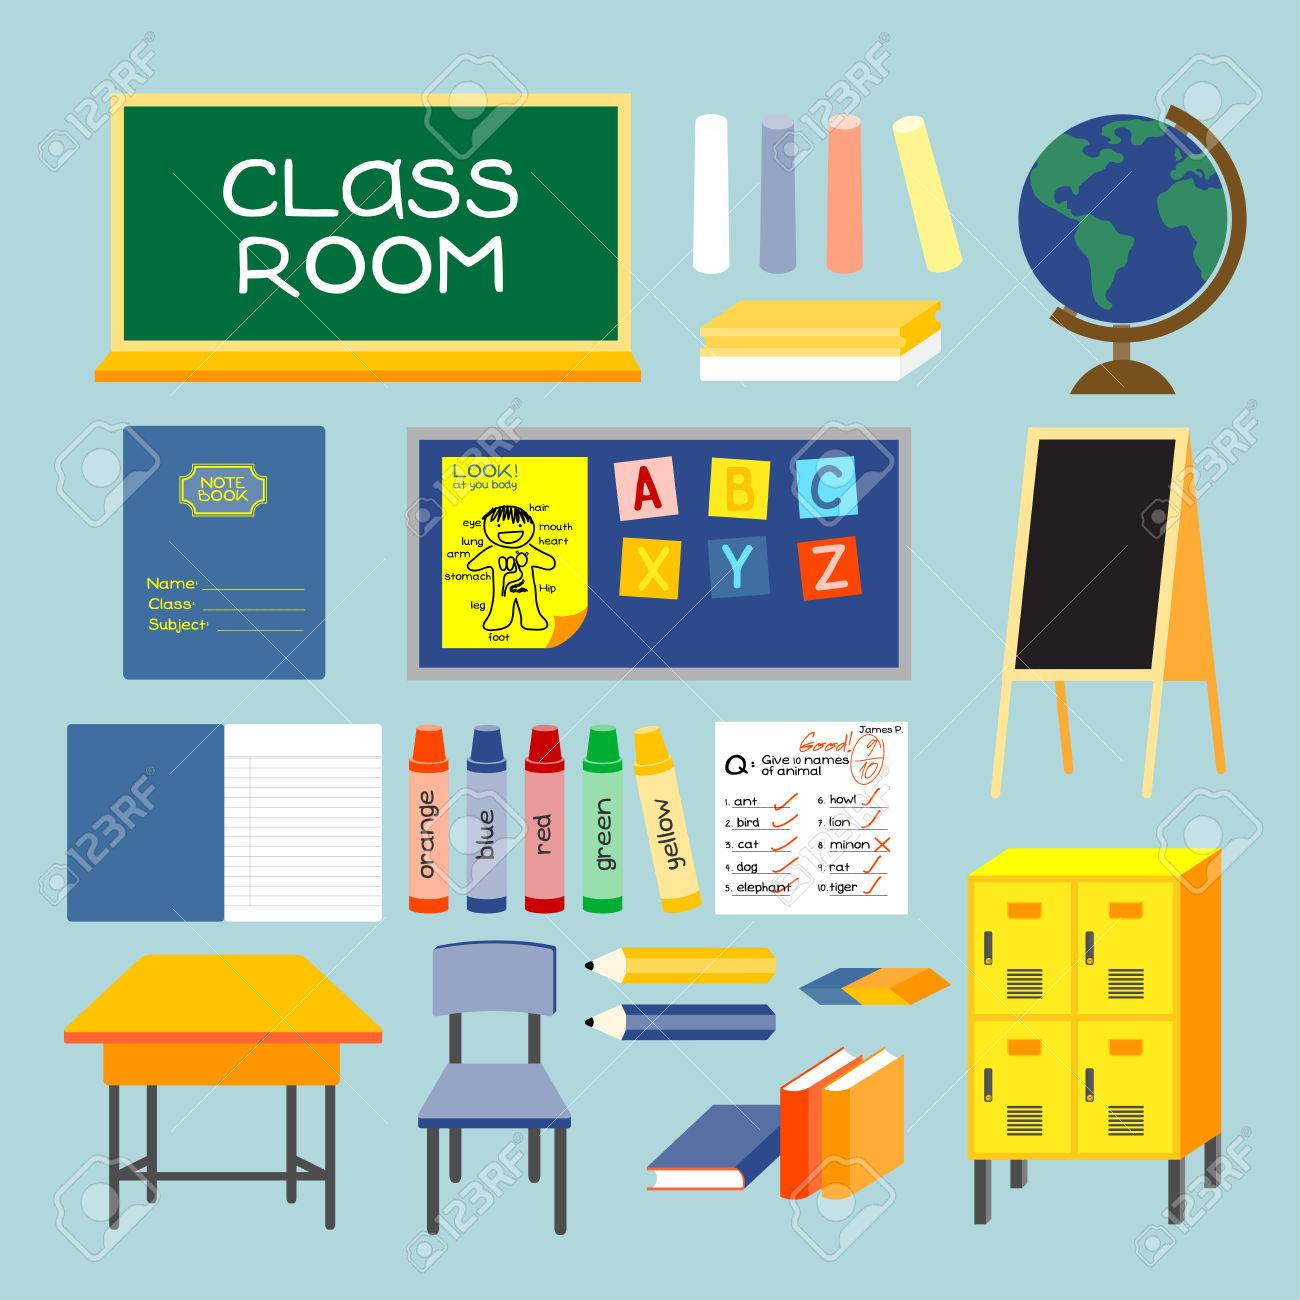 CLASS ROOM Old Style Class Room Equipments Furniture And Things